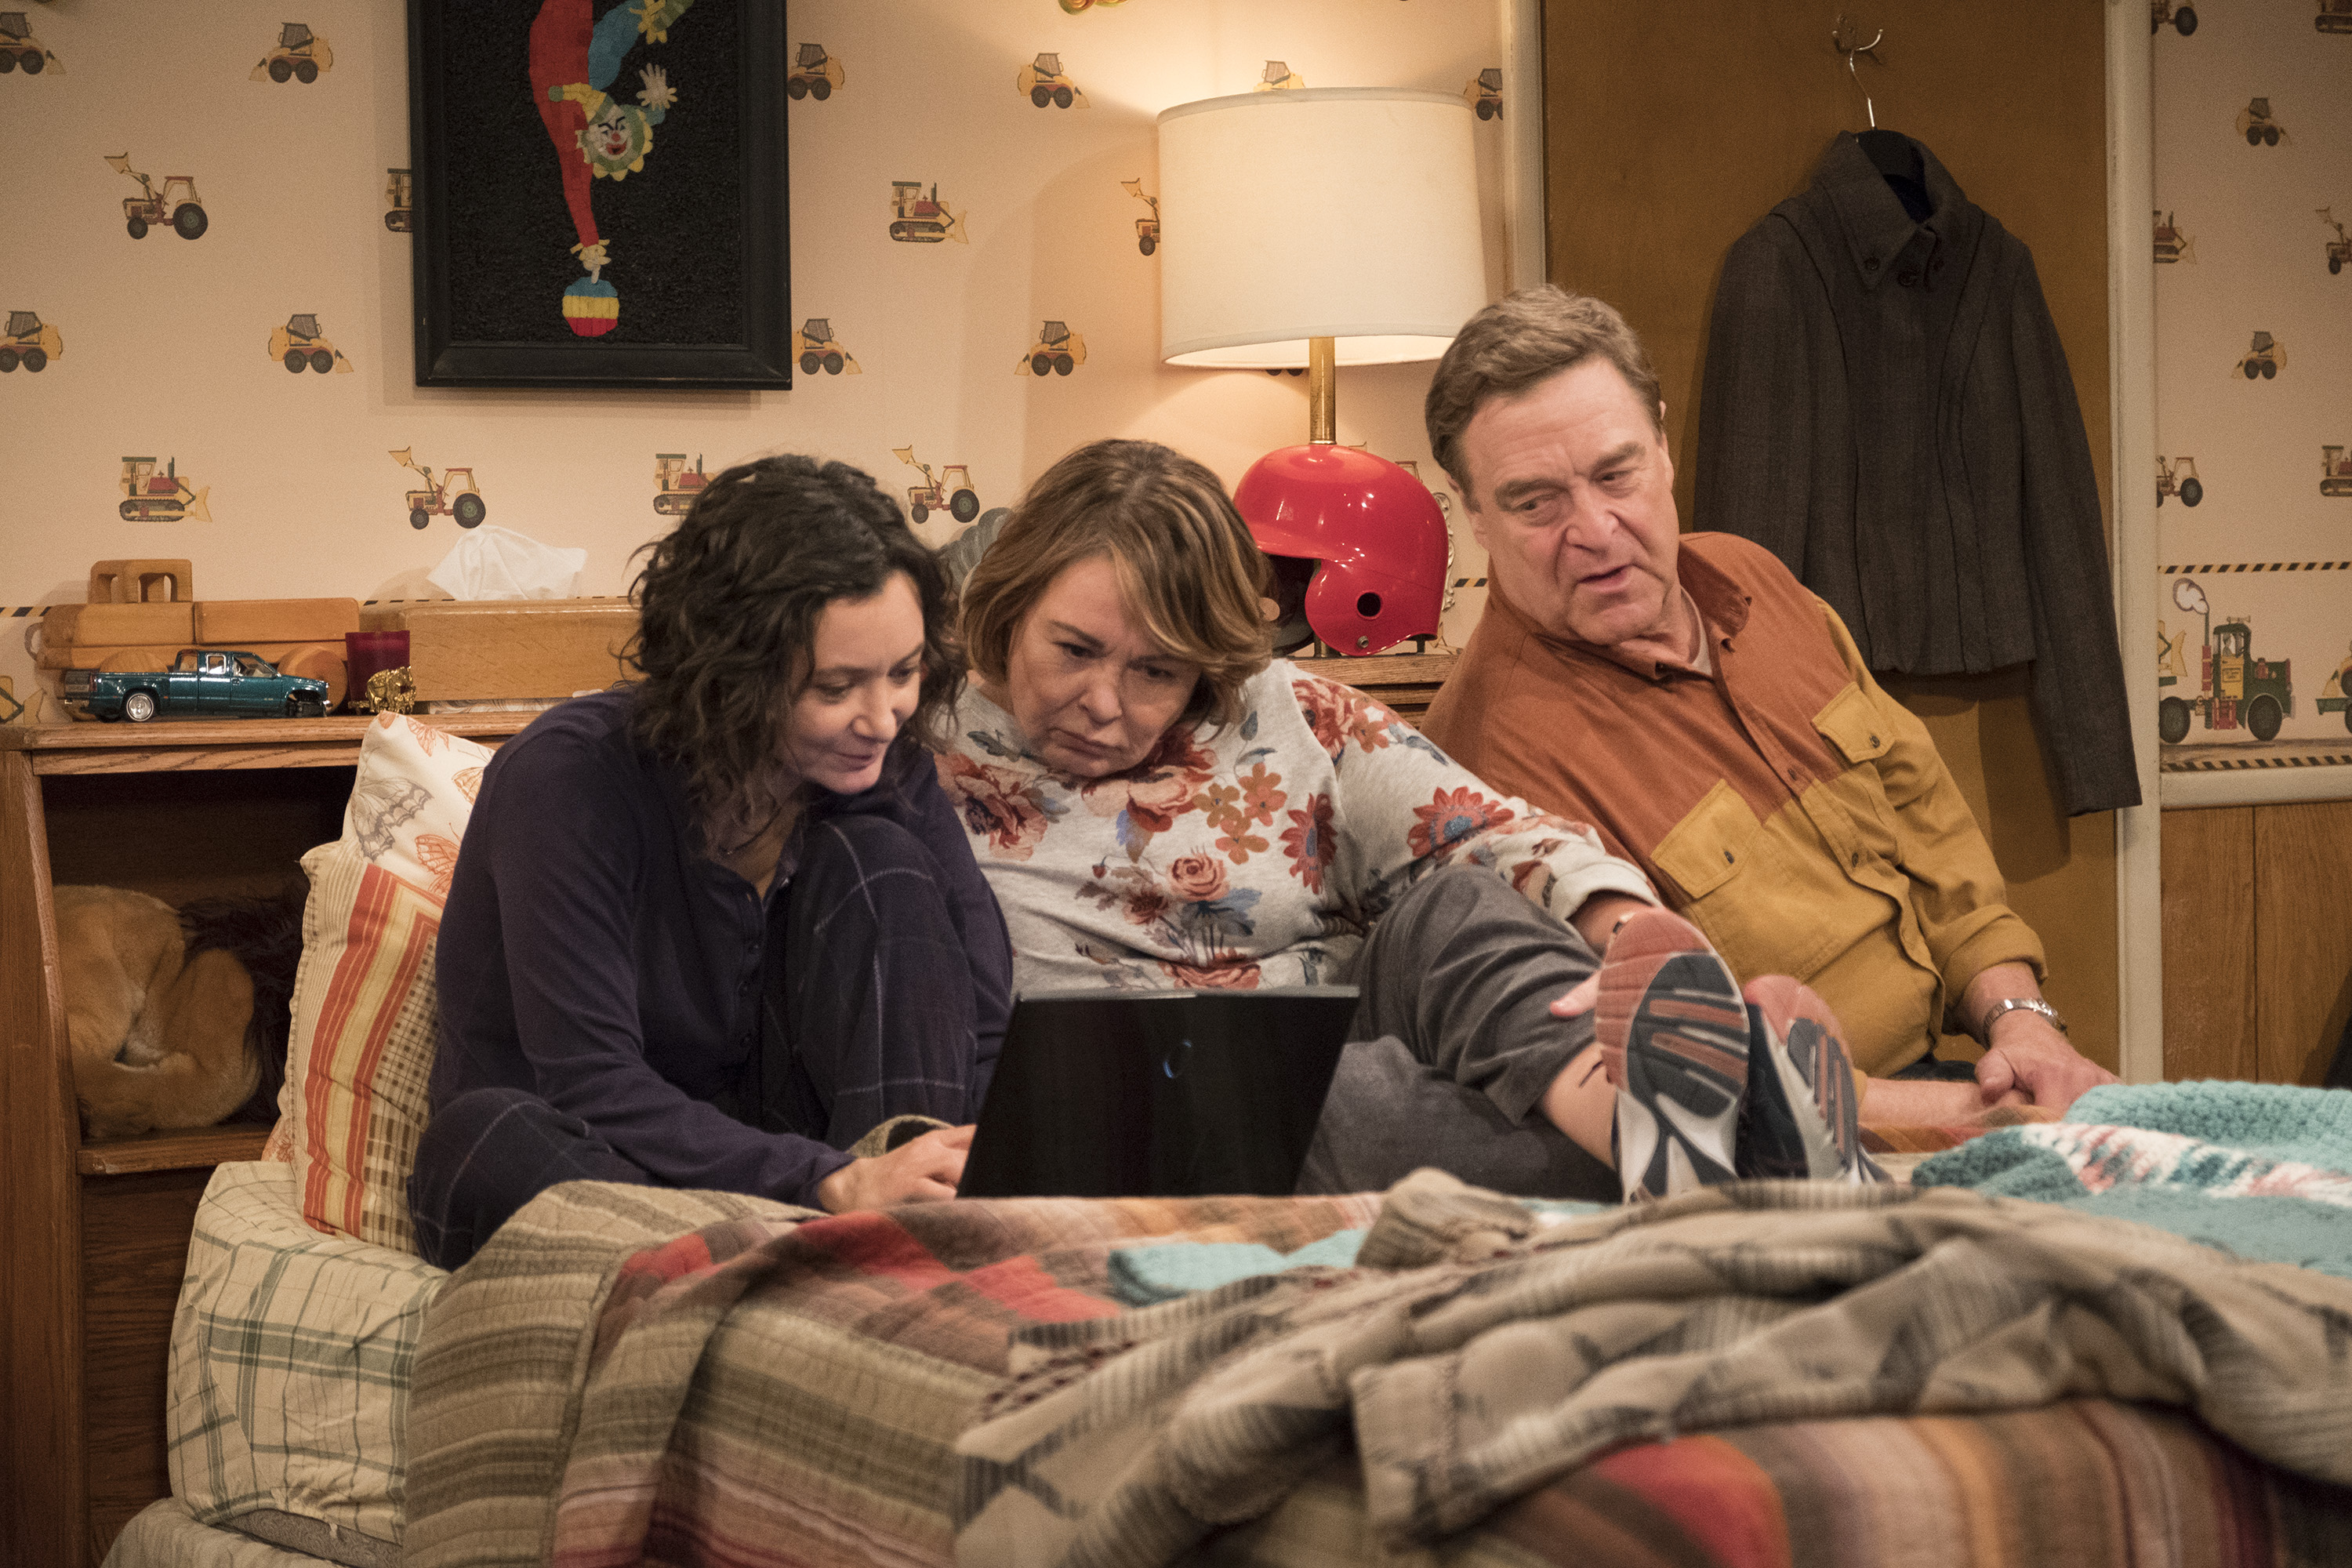 The Roseanne revival, and the argument over how TV depicts Trump supporters, explained